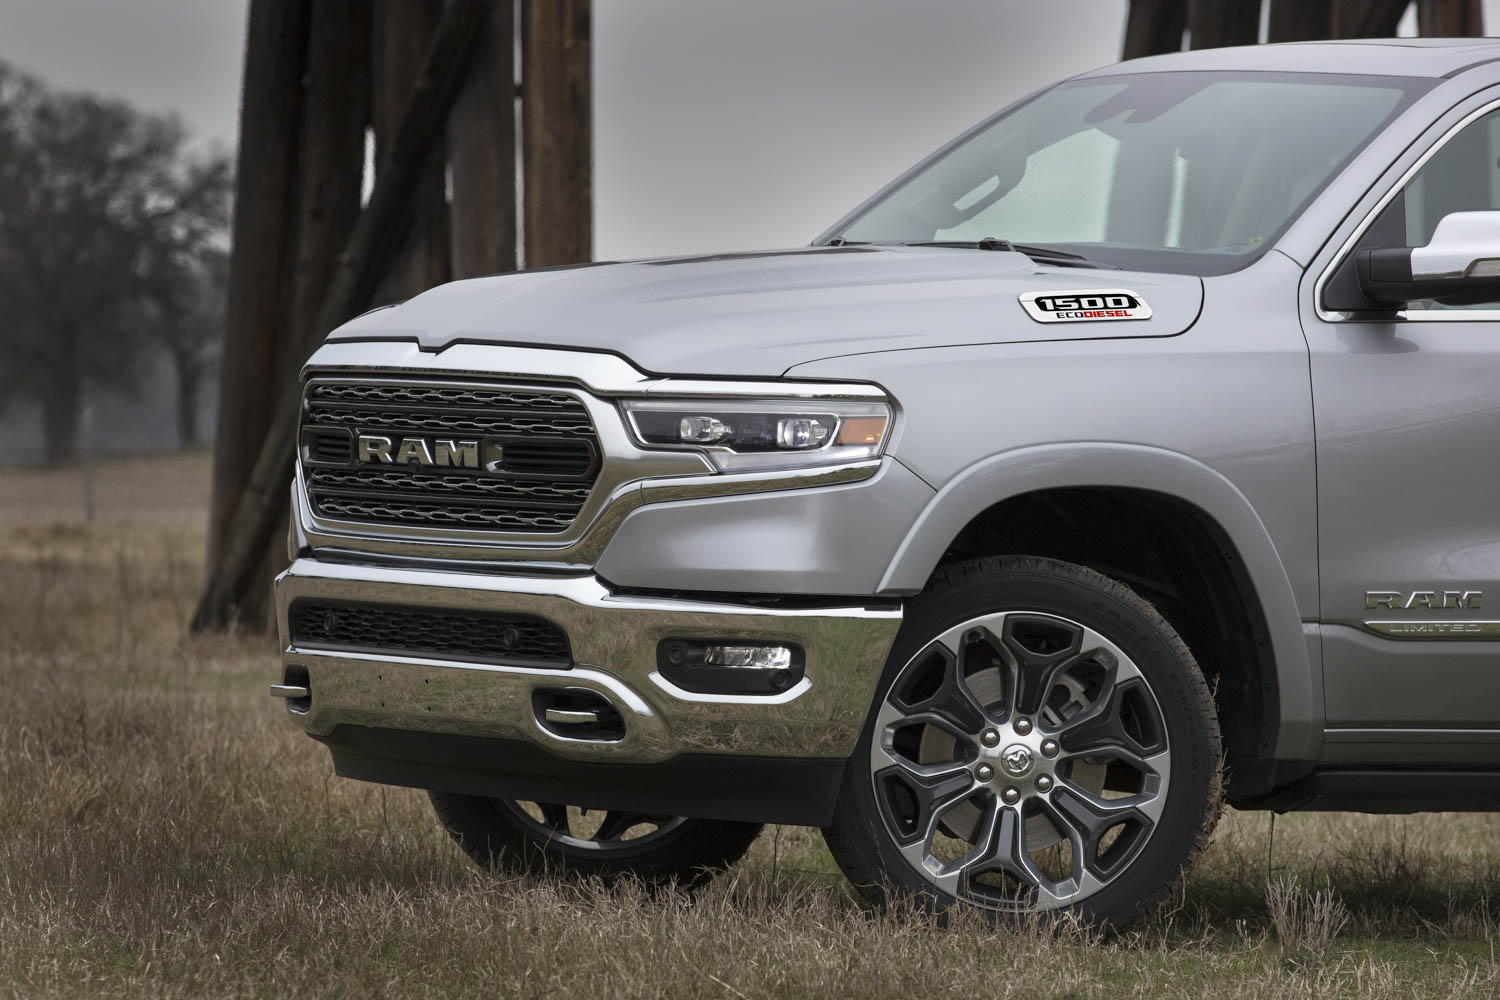 With 480 lb-ft of torque, RAM's new EcoDiesel fights the undercard bout thumbnail